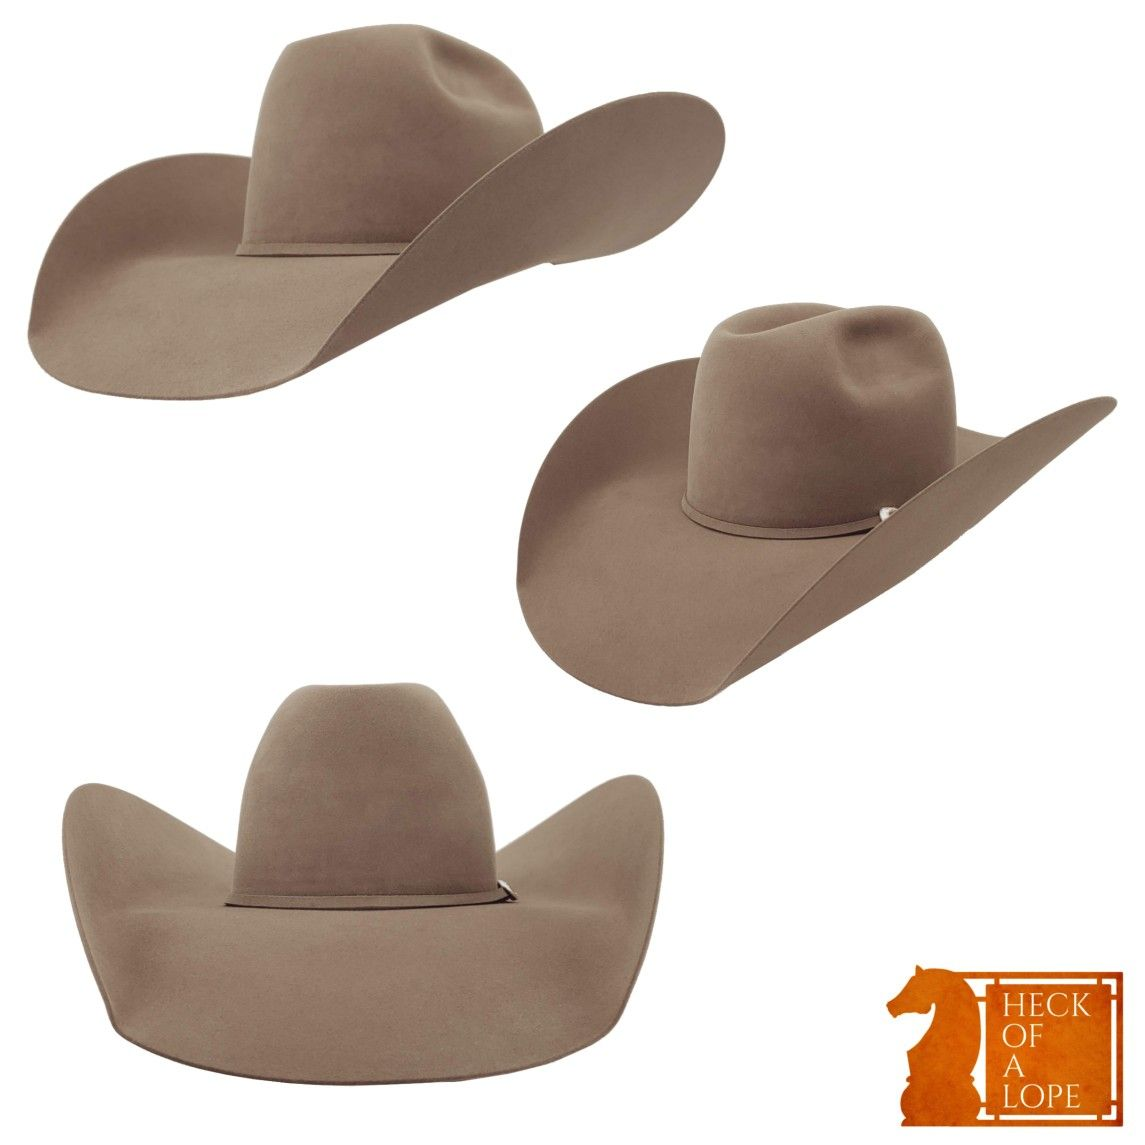 36370cd9 💥All New💥 Atwood Hat Company Pecan Felt Hat! This Super Hot🌡️Color Is  Selling Out Fast! 🔷Available In 4 1/4